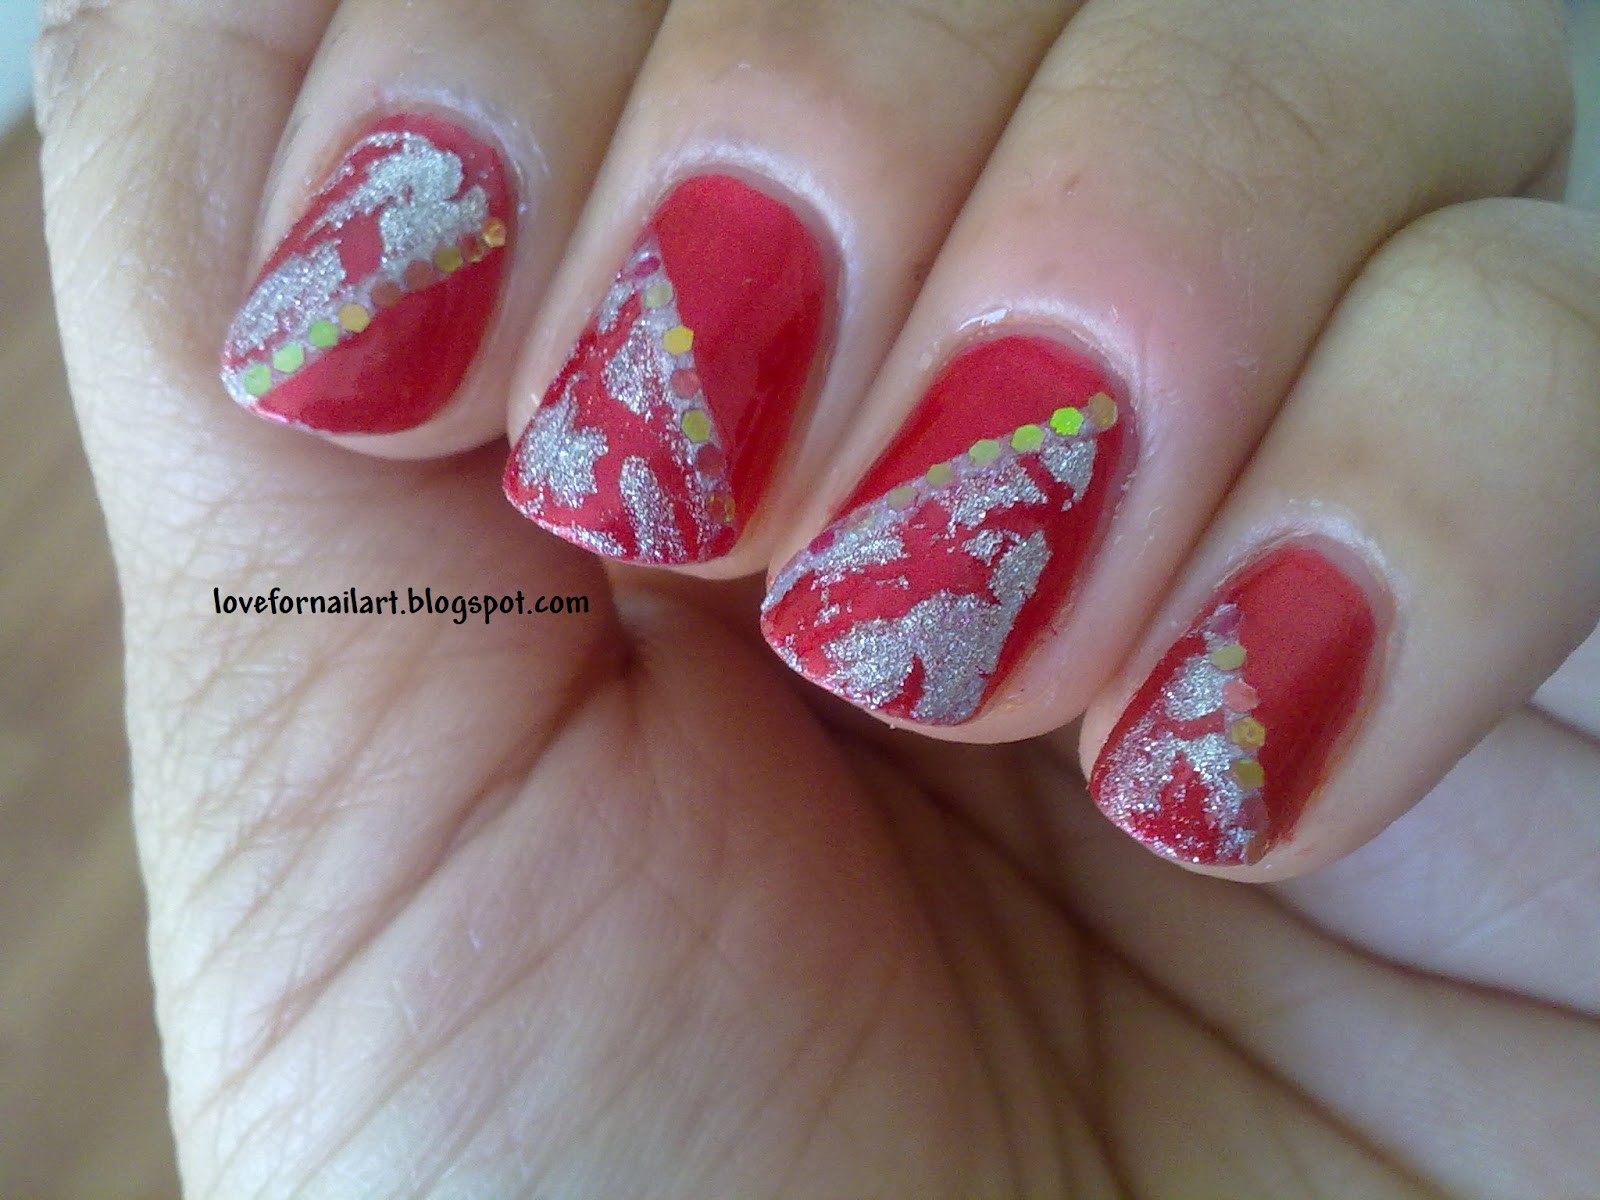 Love For Nail Art: Red And Silver Crackled Glittery Nails